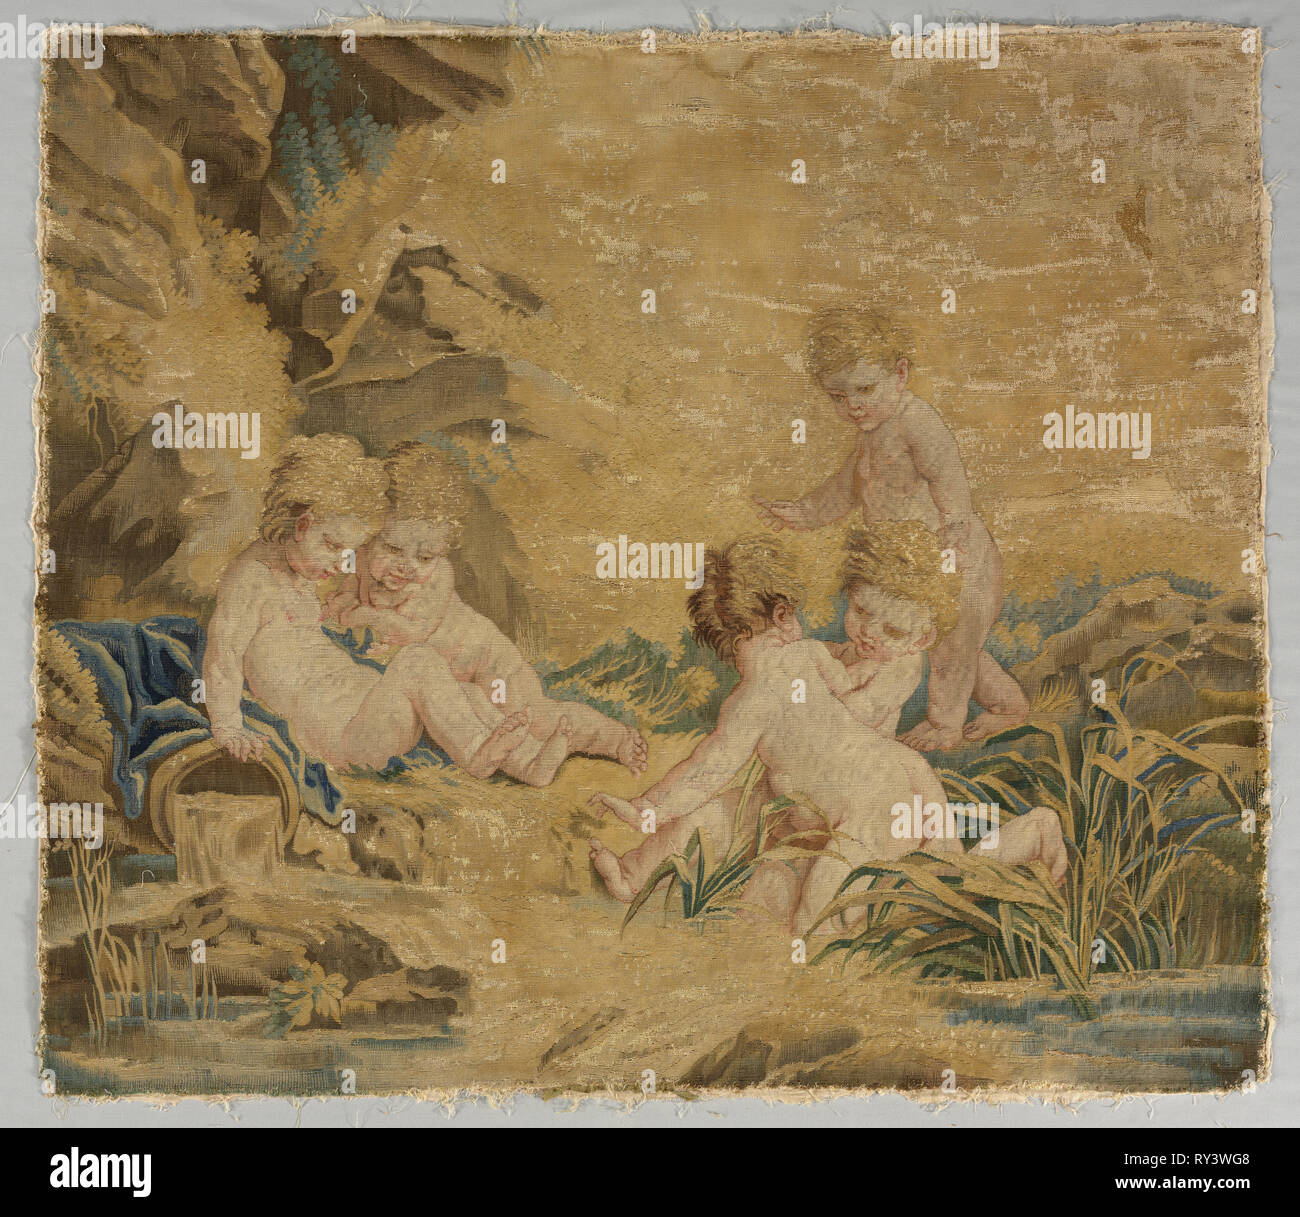 Children Playing: The Bath, 1700s. Workshop of Charron (French), after a design by François Boucher (French, 1703-1770). Tapestry weave: silk and wool; overall: 101 x 114.3 cm (39 3/4 x 45 in - Stock Image